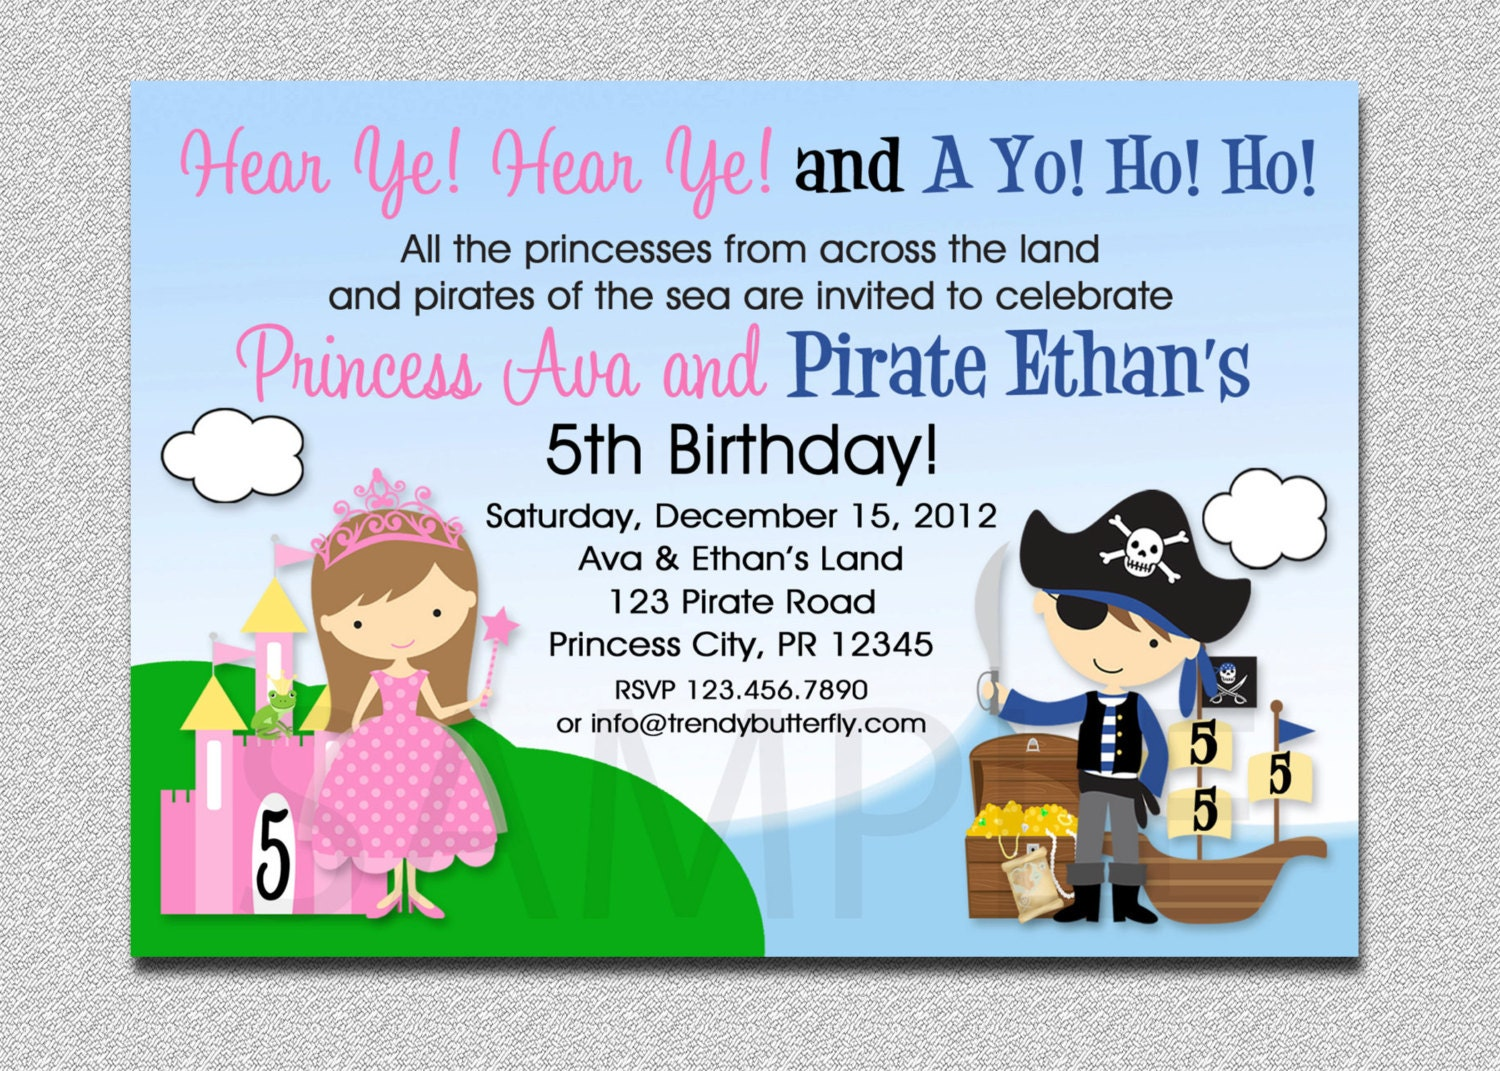 Princess Pirate Birthday Invitation Princess and Pirate Party